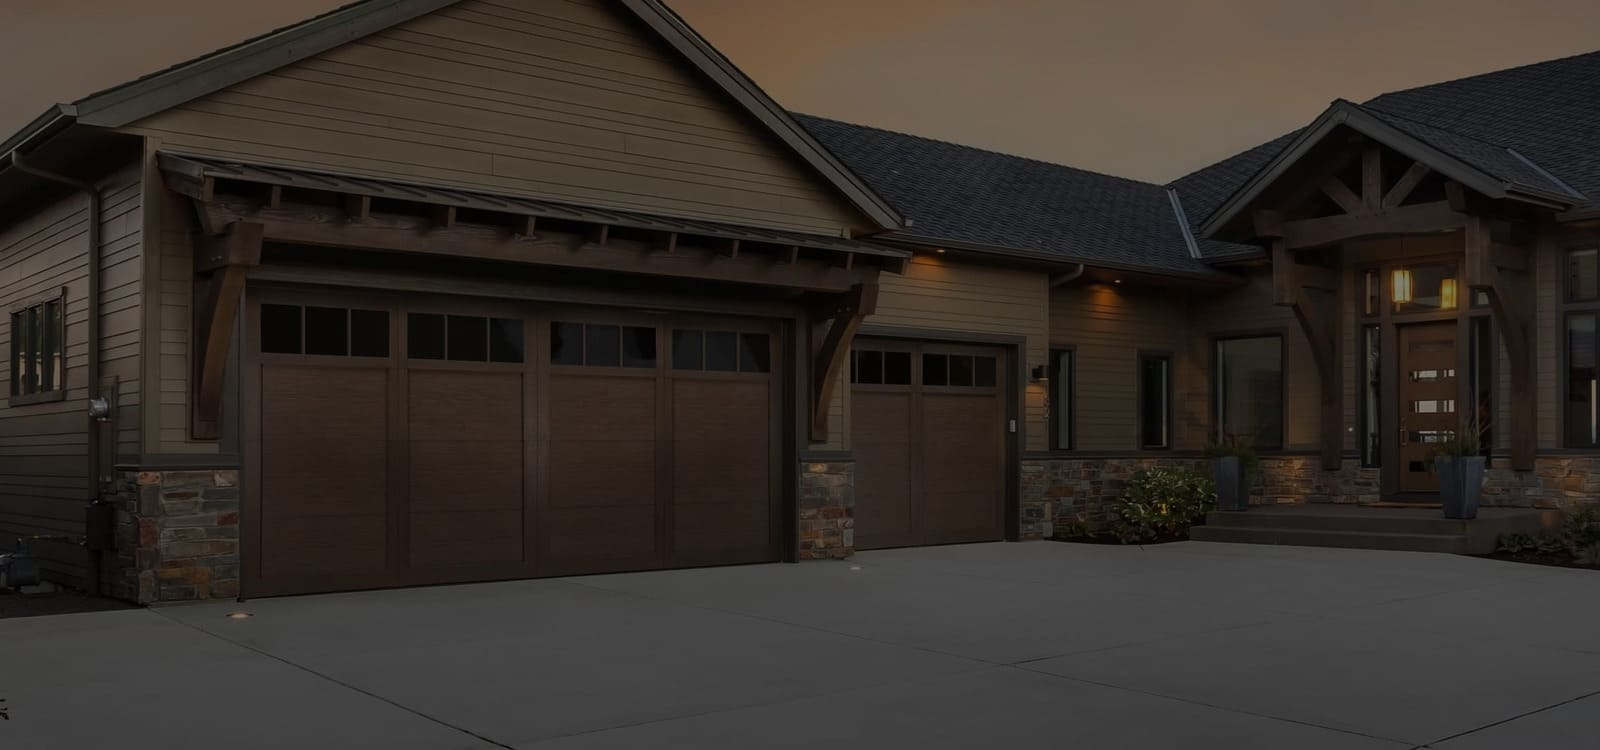 Spanish Fork Garage Door Repair